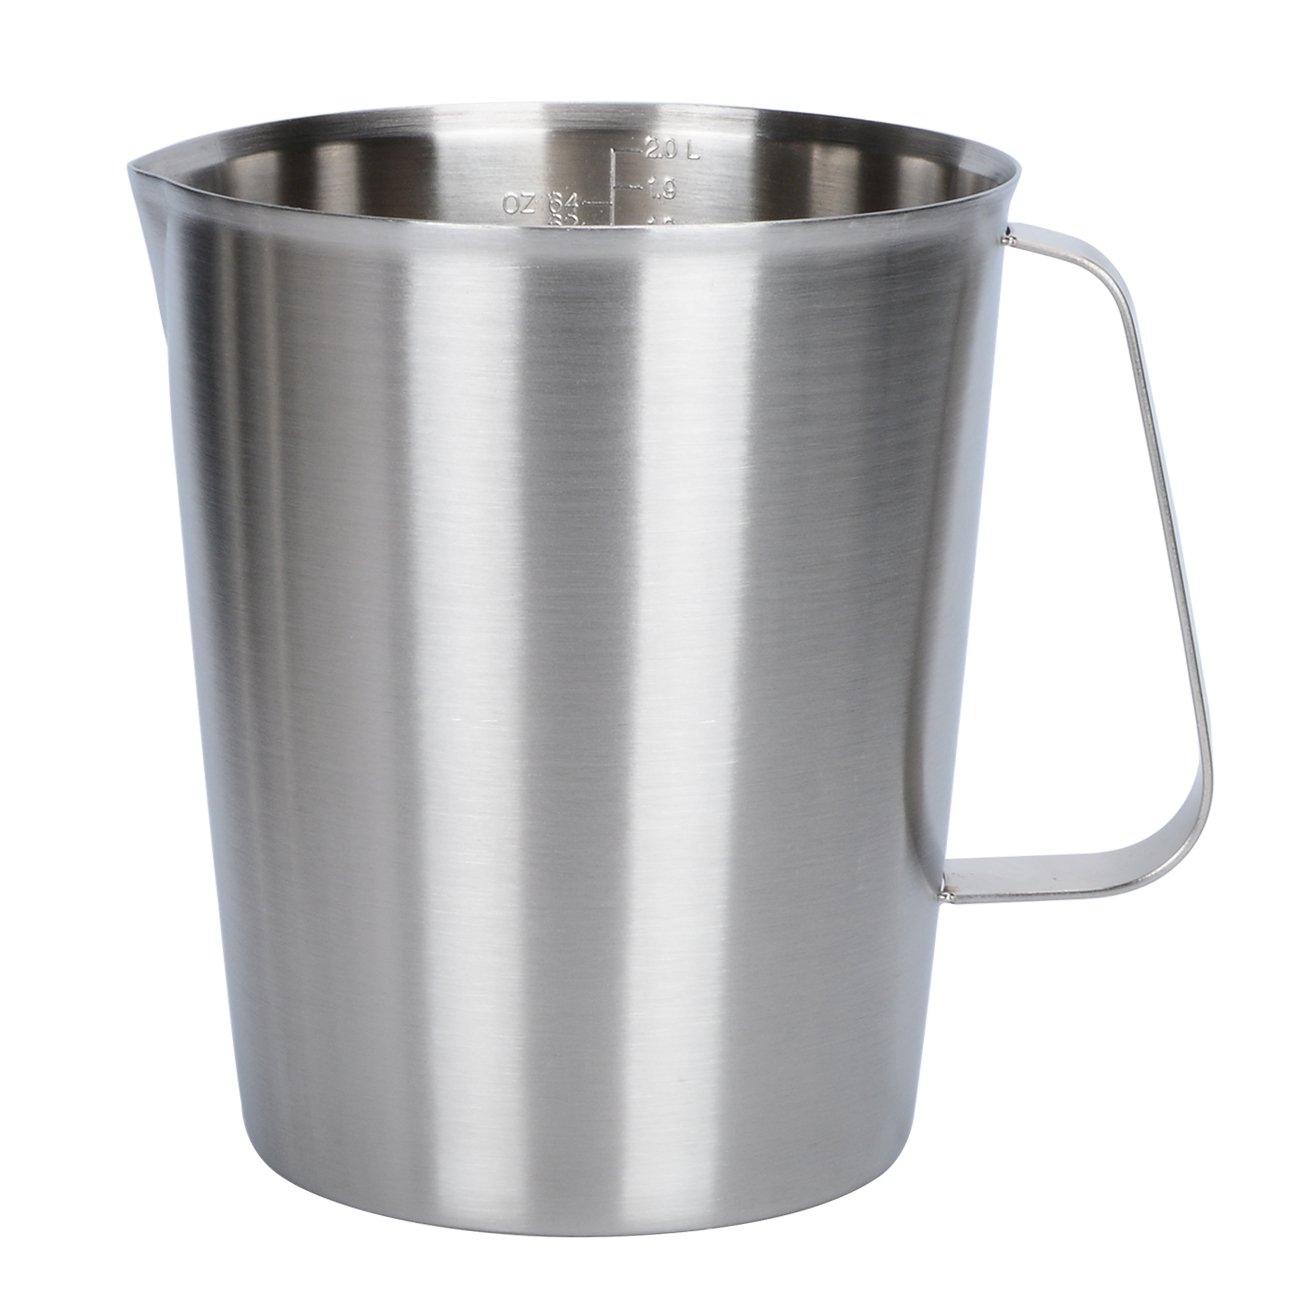 Holfcitylf Stainless Steel Milk Frothing Pitcher Jug Coffee Foam Measurement Markings in both oz and ml 17oz / 24oz / 34oz / 51oz / 68oz